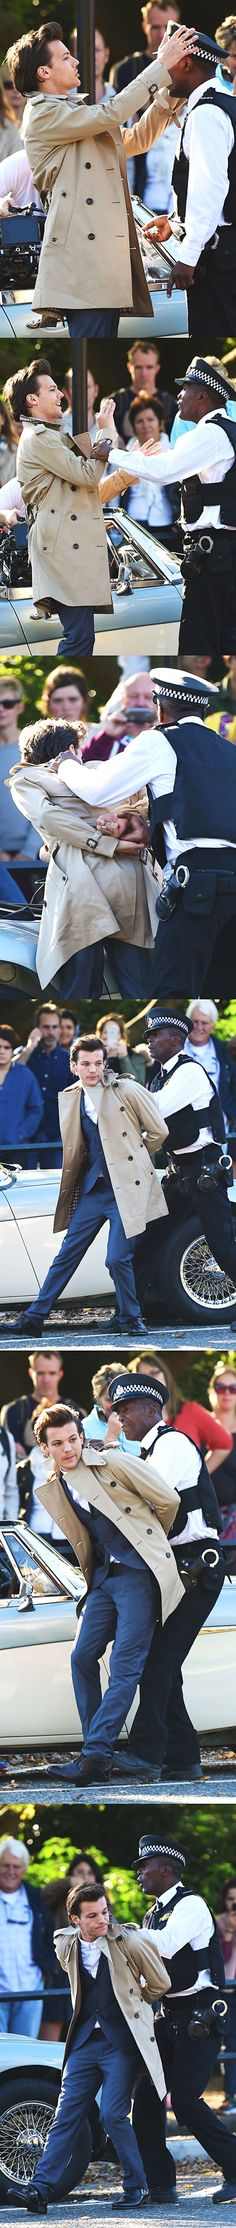 Louis filming in Hyde Park